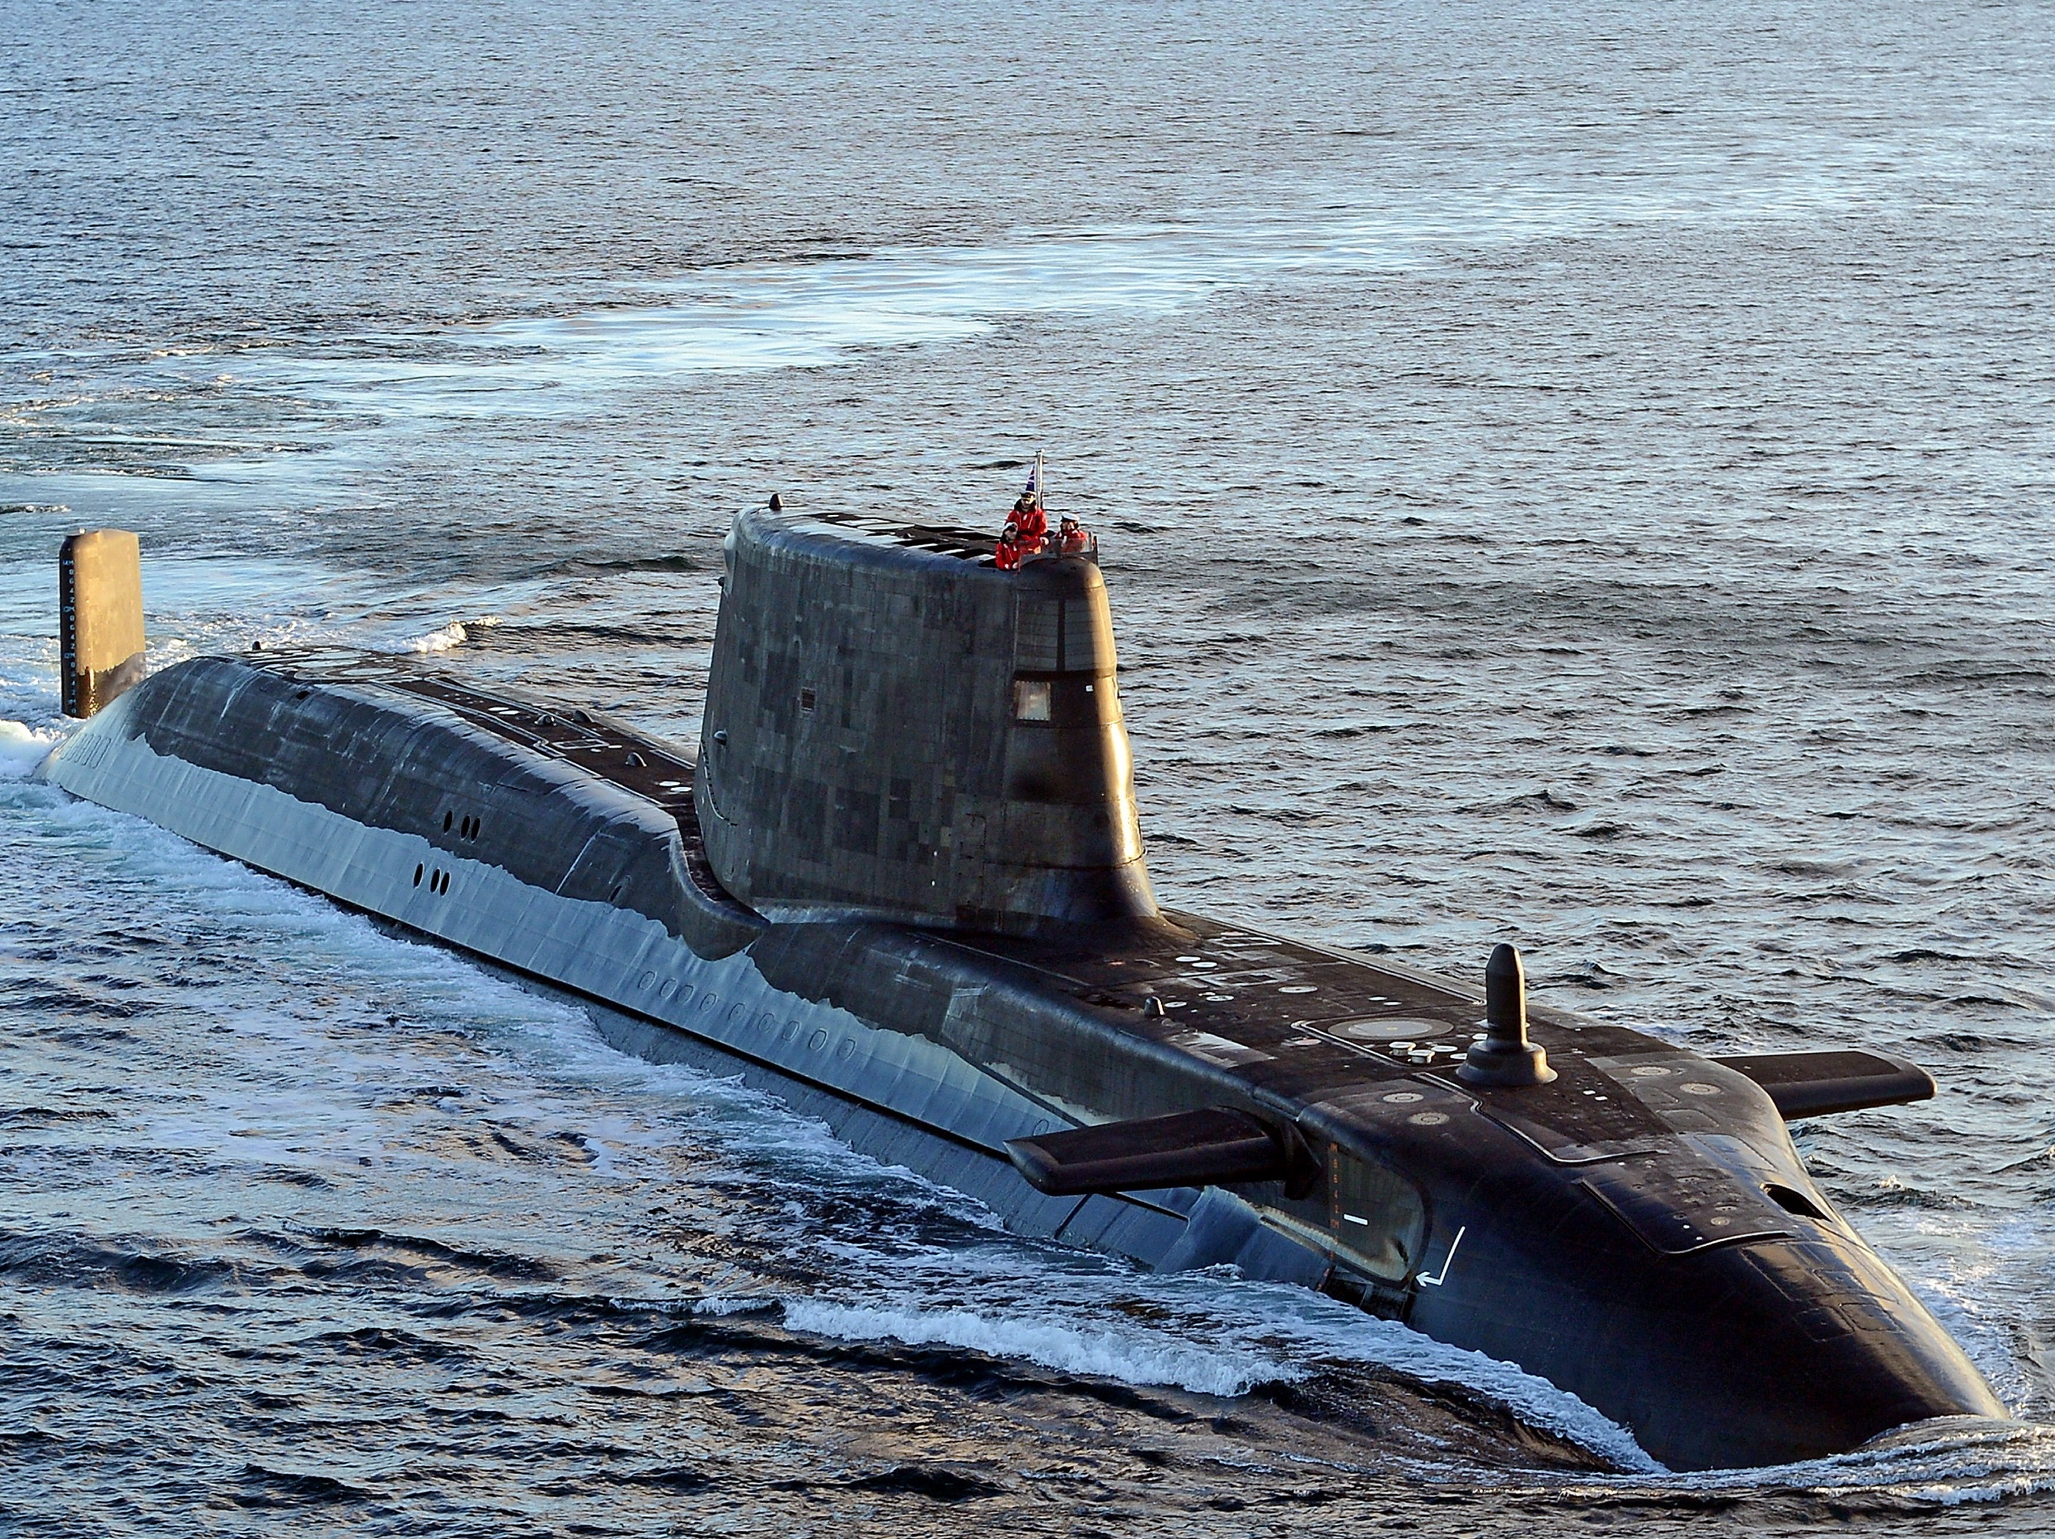 The Astute-class nuclear attack submarine HMS Ambush underway.